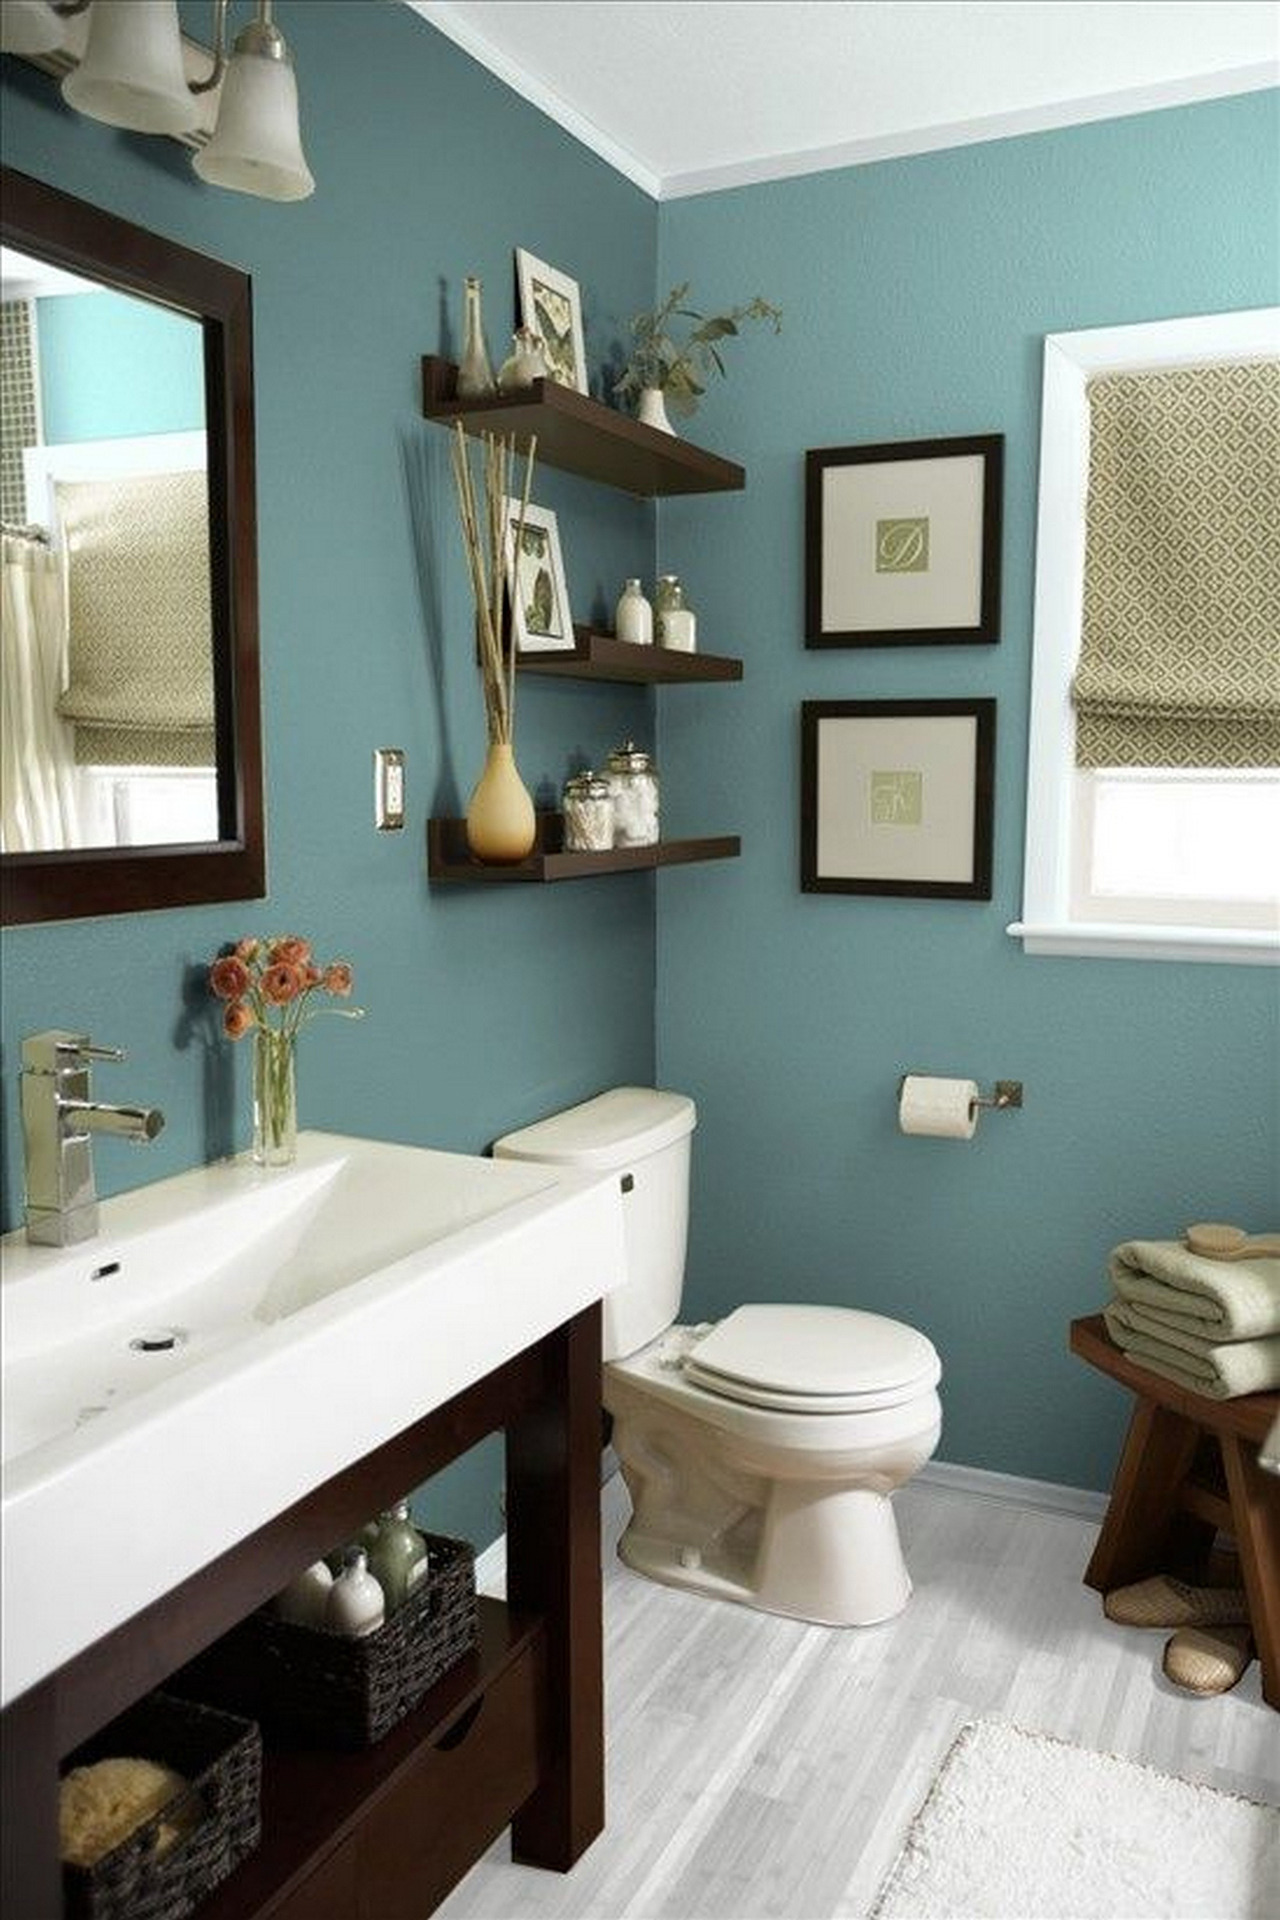 13 bathroom decor ideas homebnc